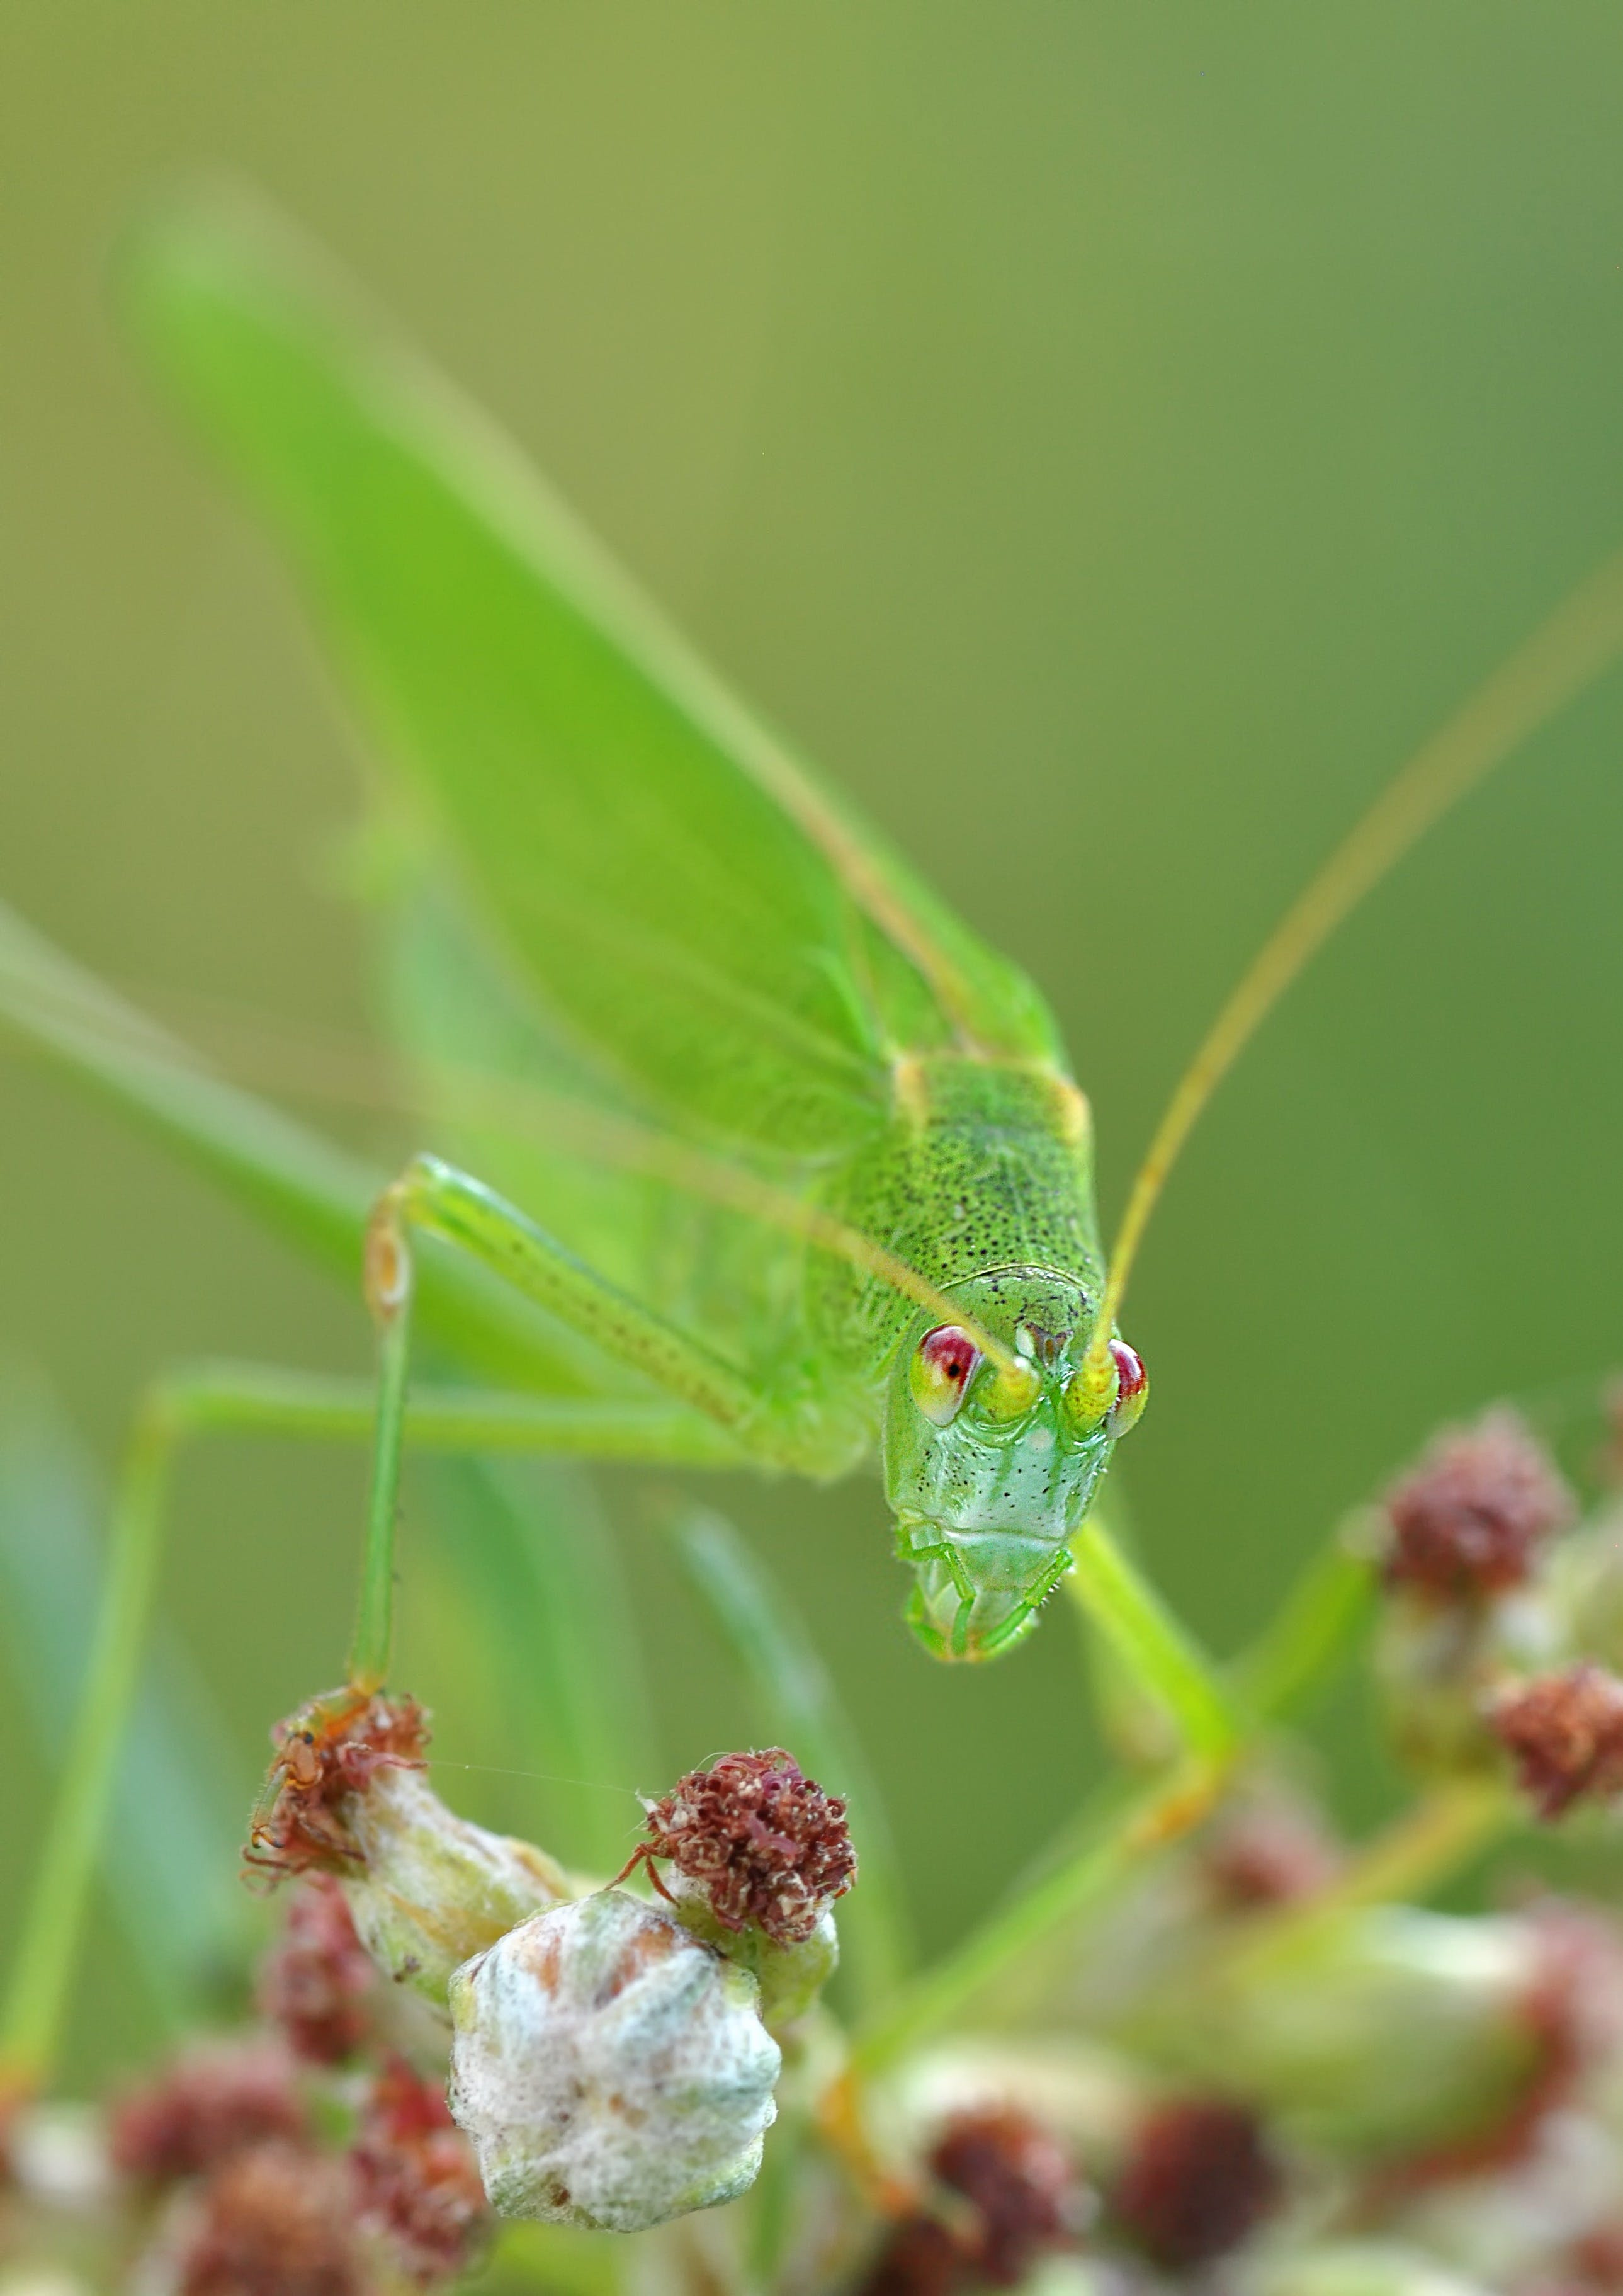 Green Grasshopper Macro Photography